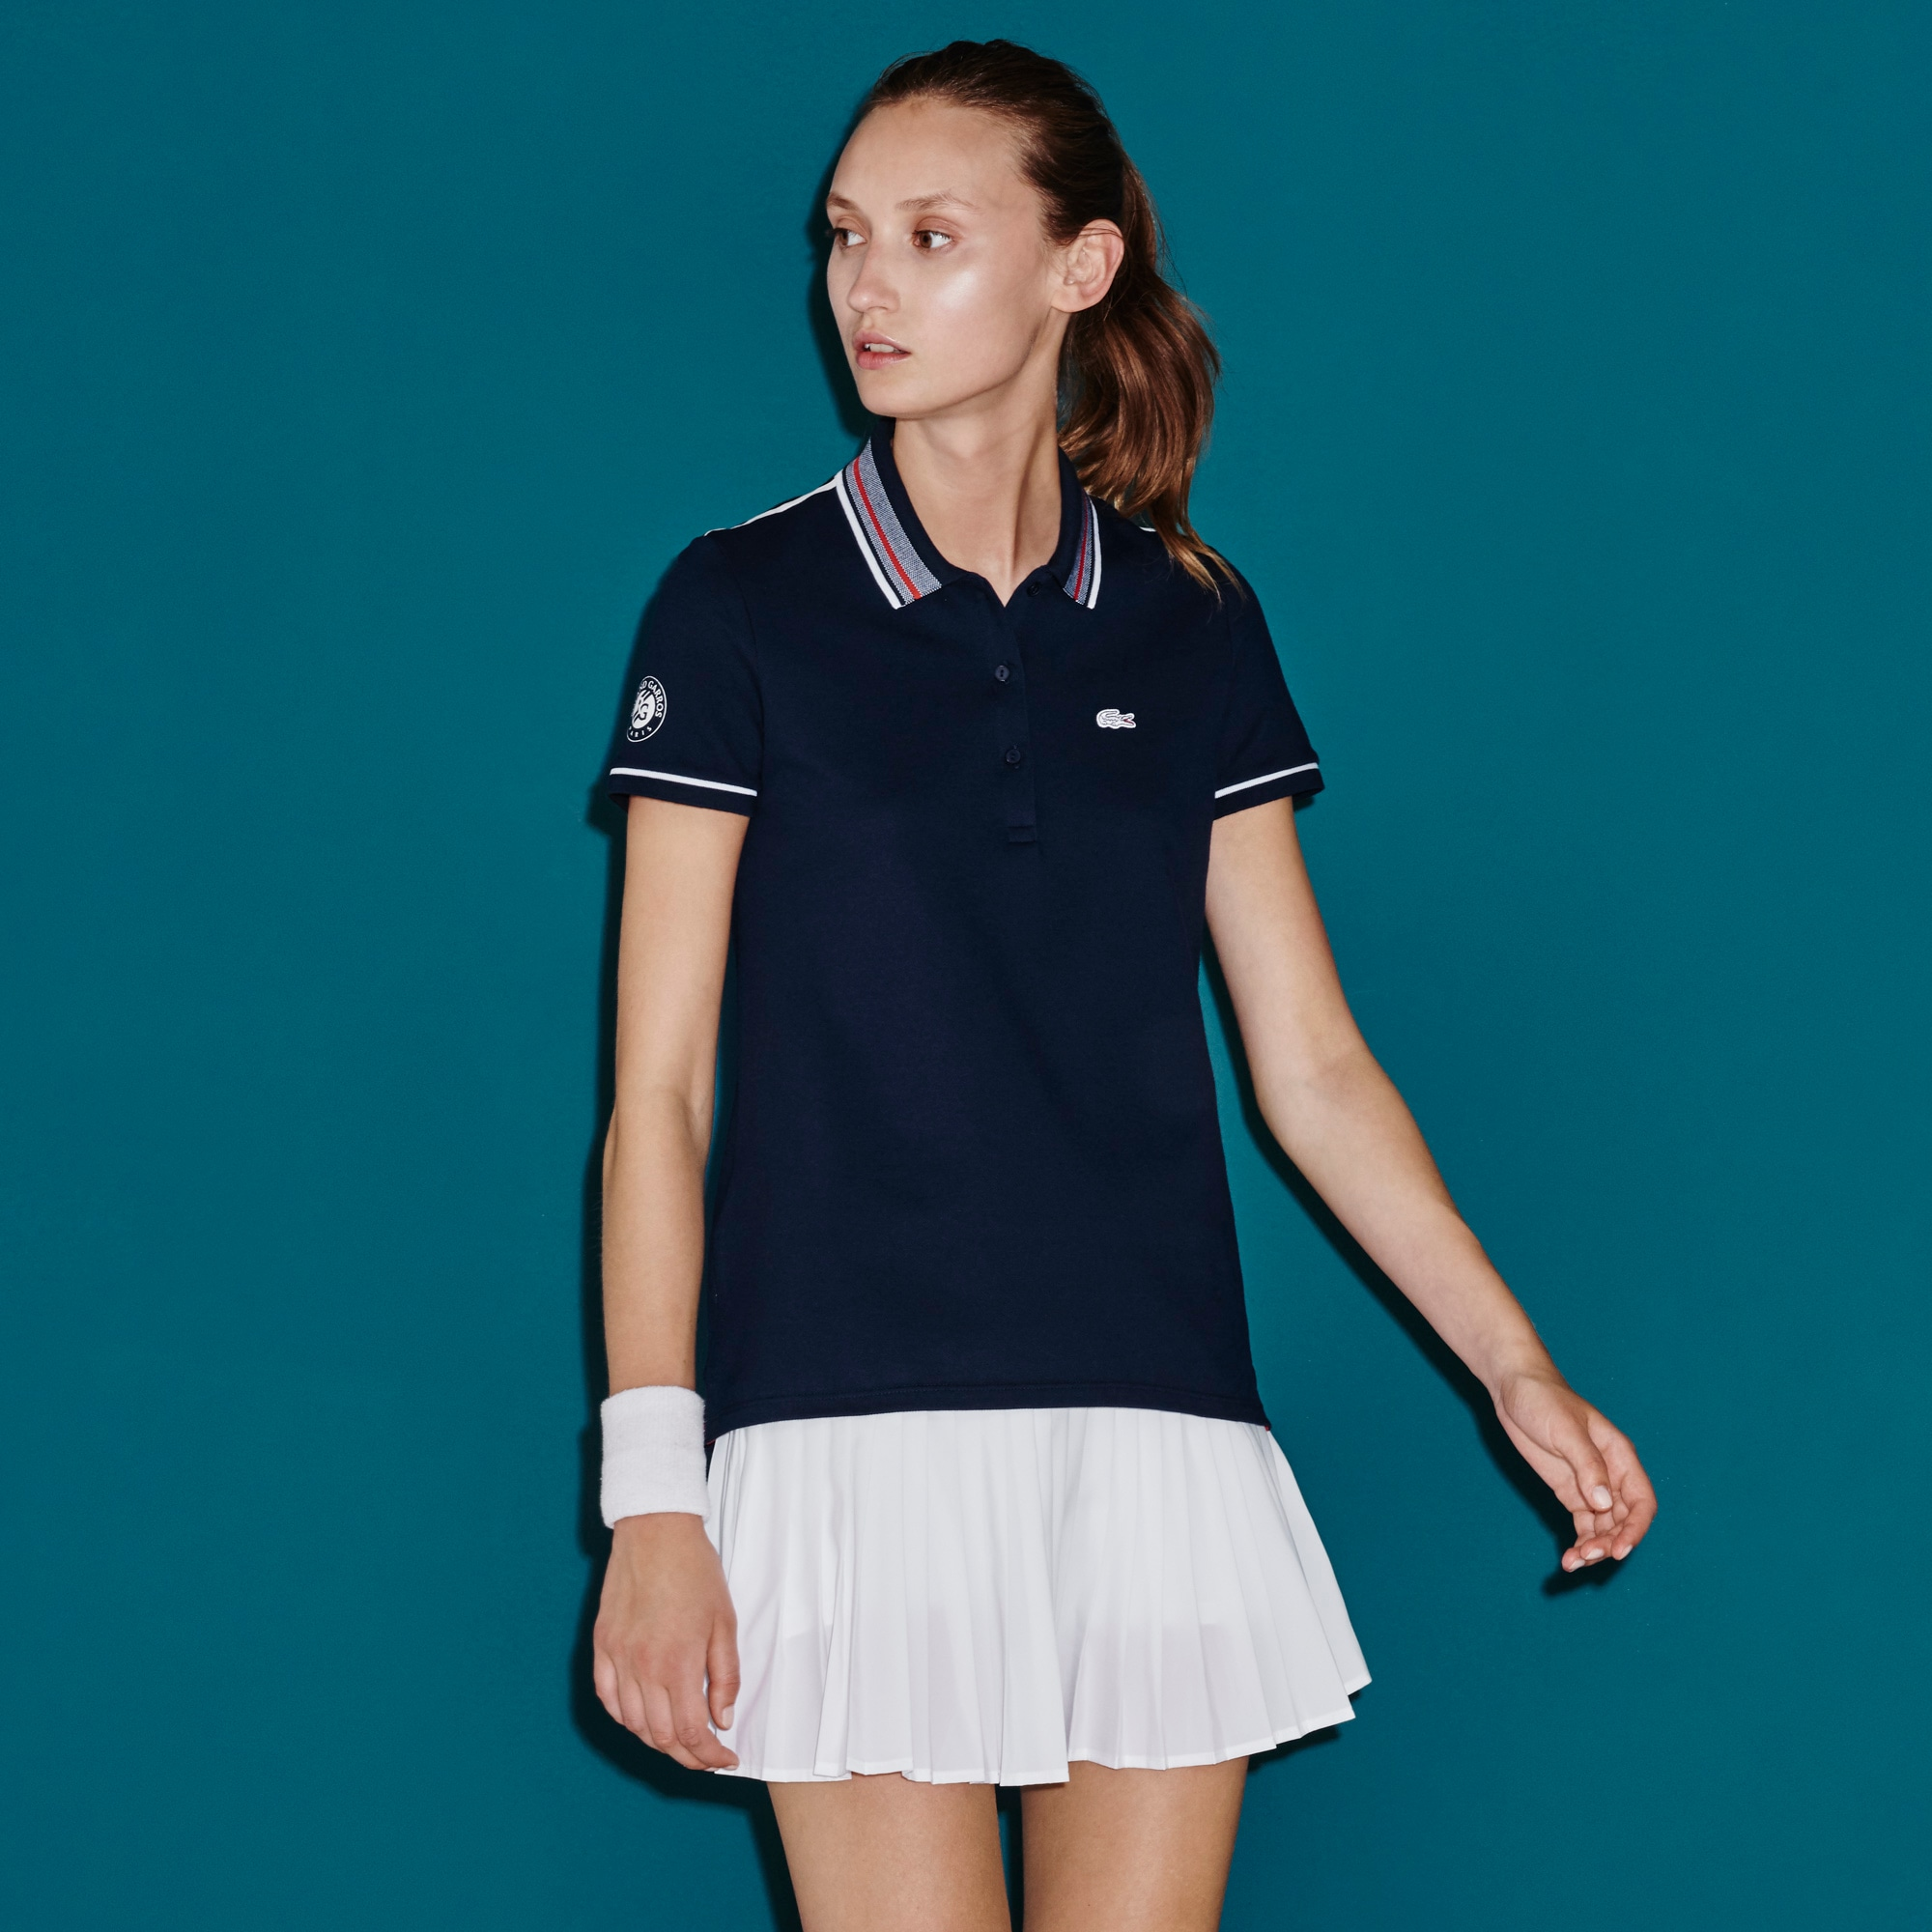 Women's SPORT French Open Striped Neck Polo Shirt